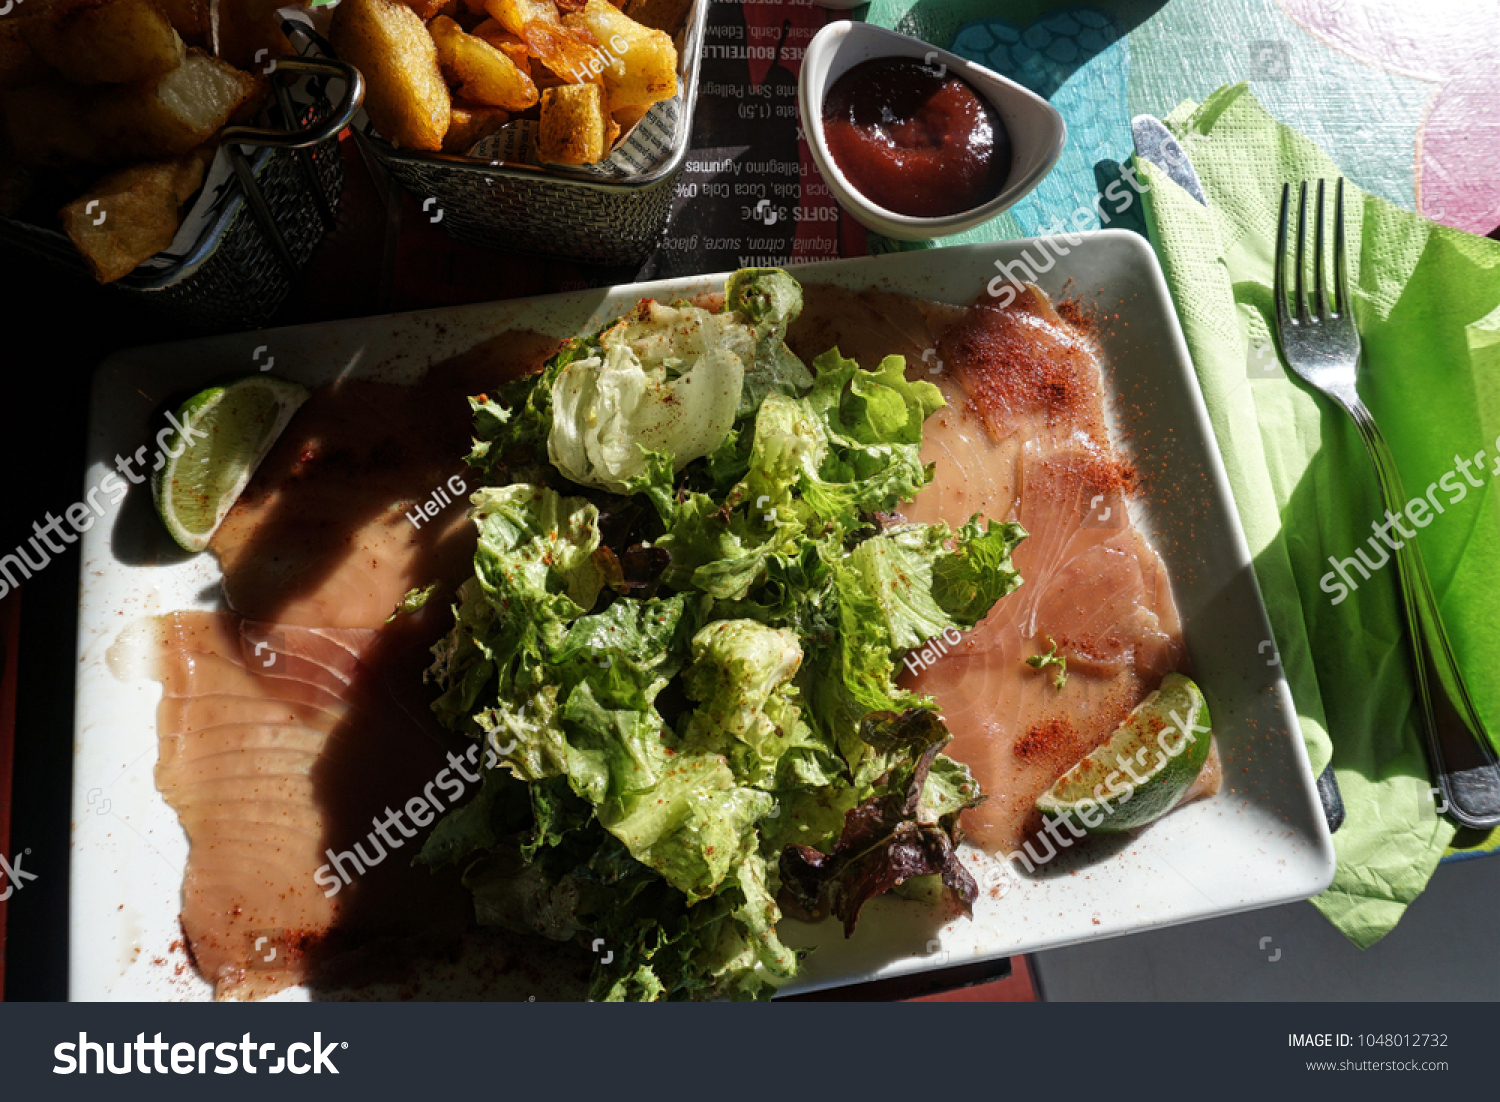 Cuisine Guadeloupe Guadeloupe Caribbean France February 9 2018 Stock Photo Edit Now